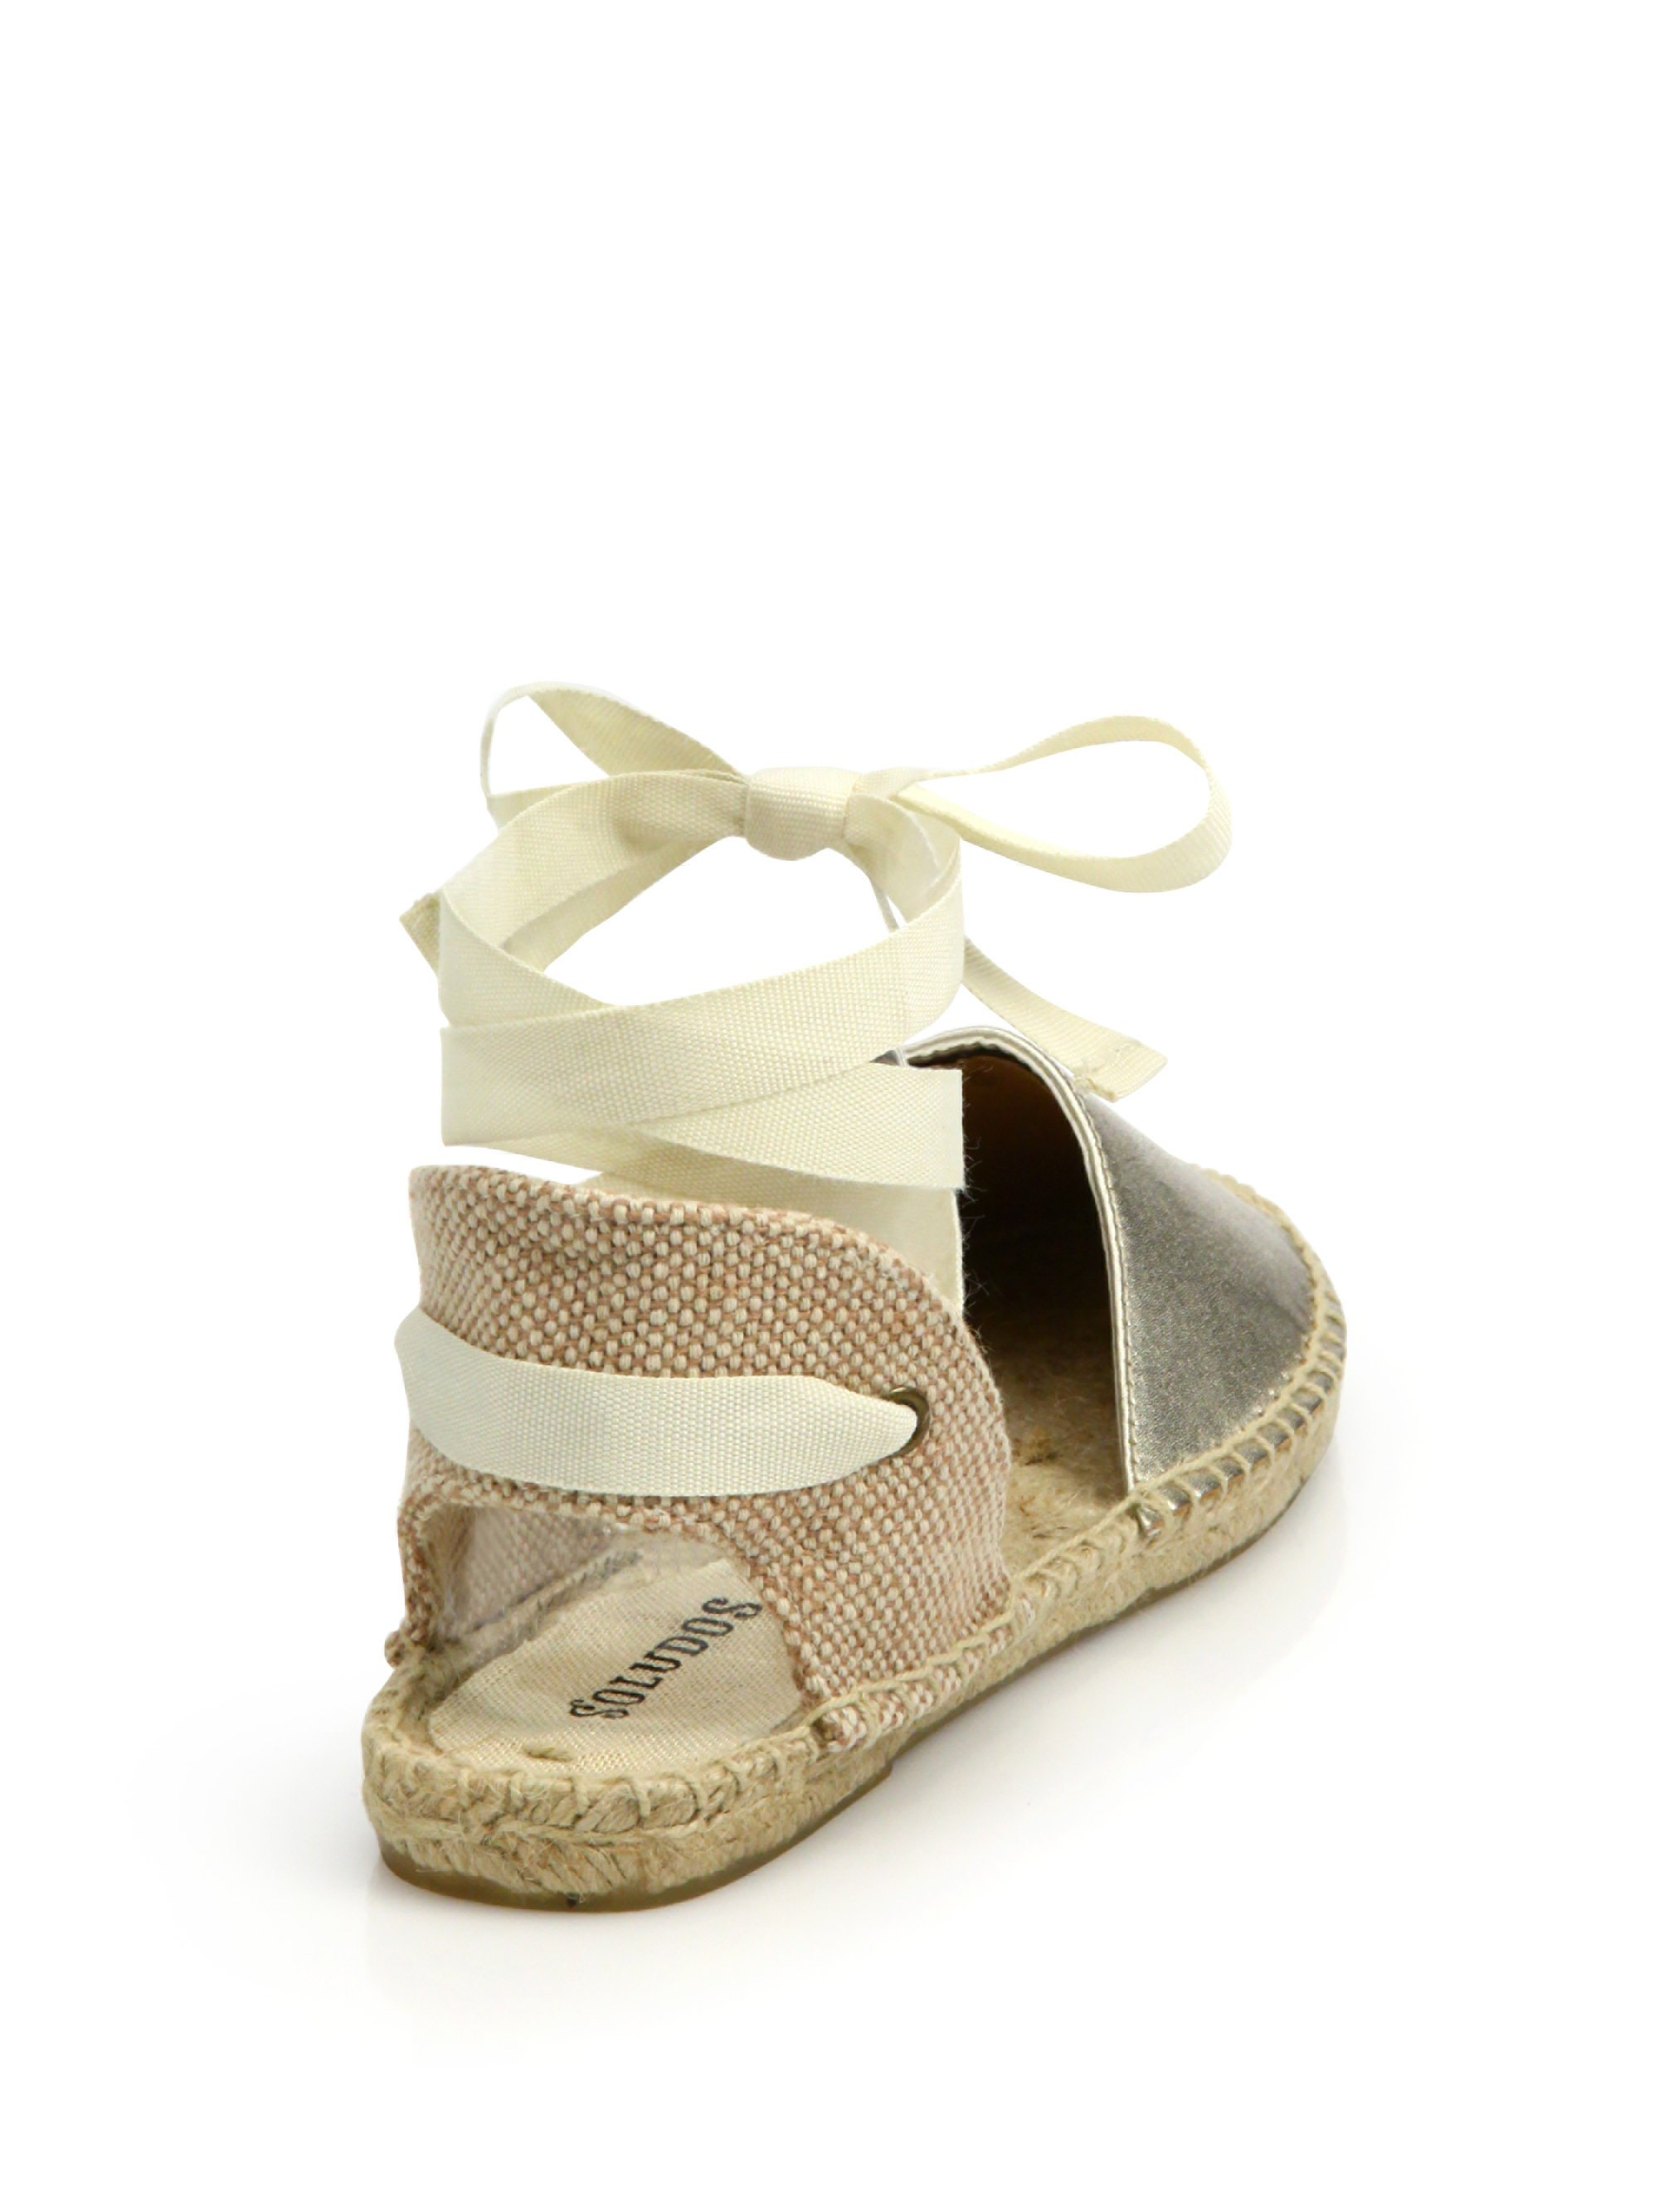 6633d7ad0e1d7 Lyst - Soludos Classic Platinum Leather Espadrille Sandals in White